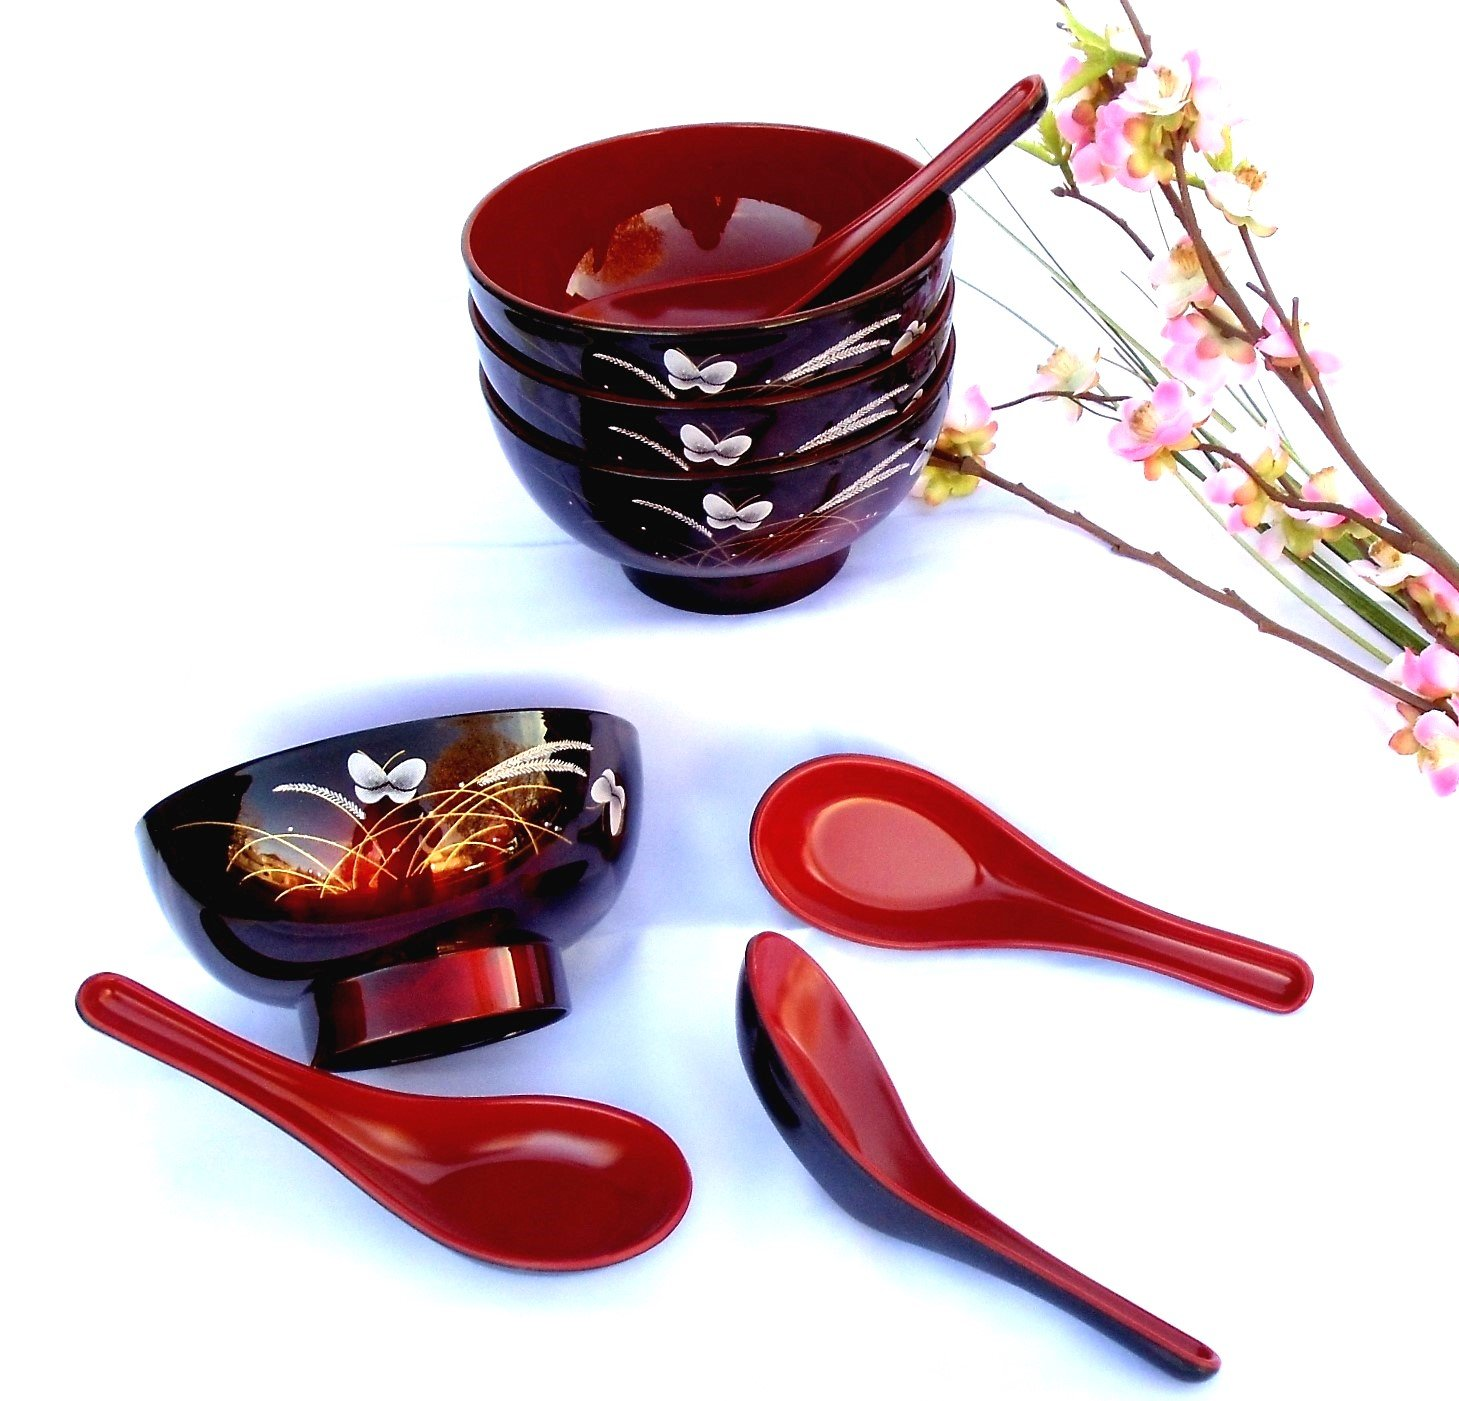 4 Butterfly Lacquer Rice Miso Soup Bowls + 4 Spoons Red/blk NEW Fuji Y61/MB and 7003JRB